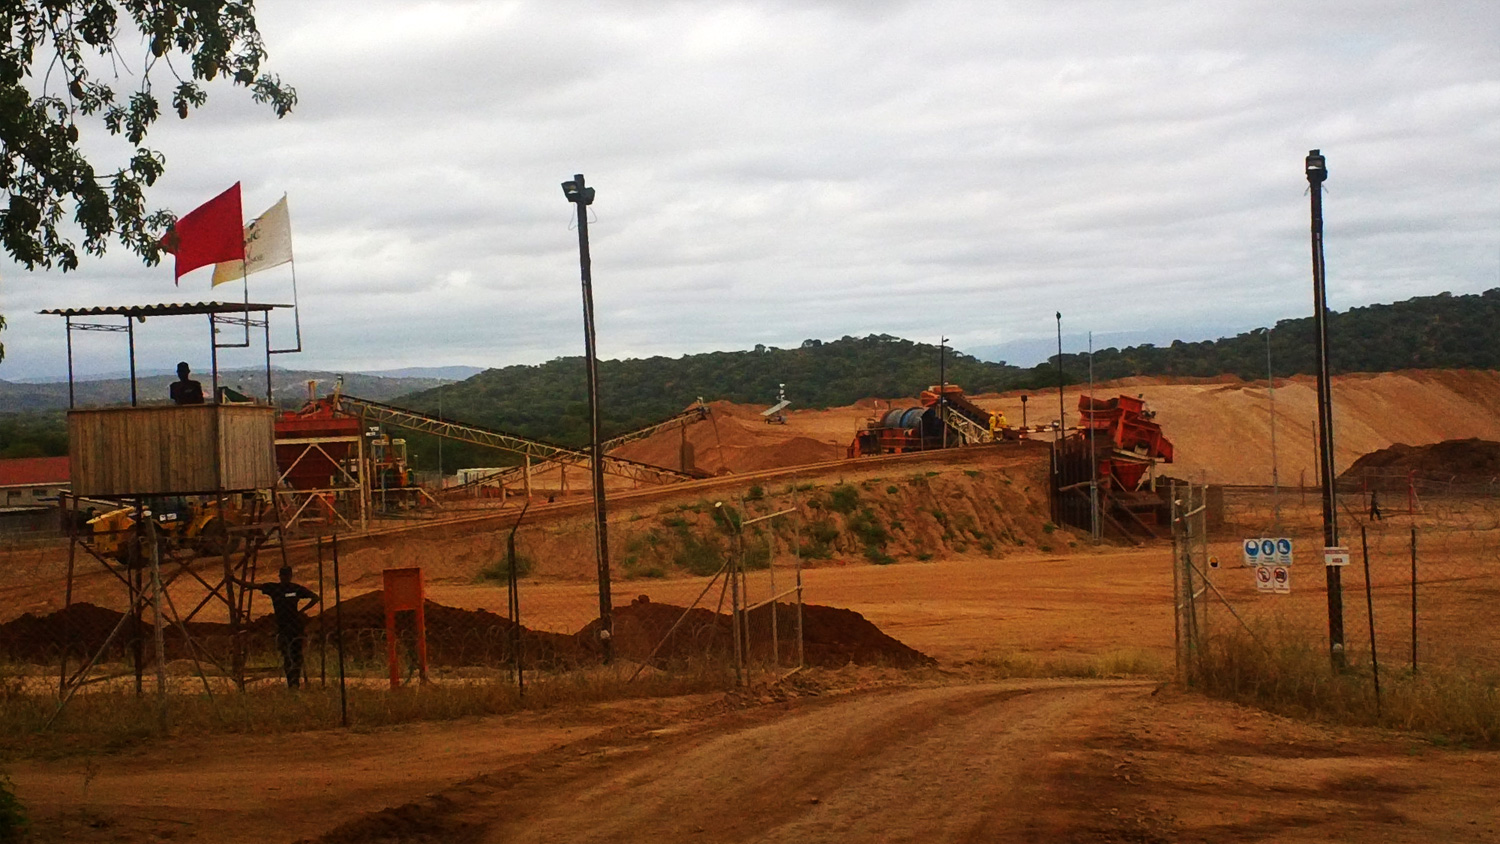 Security at the Marange diamond fields, about 90km southeast of the Zimbabwe city of Mutare in Manicaland province